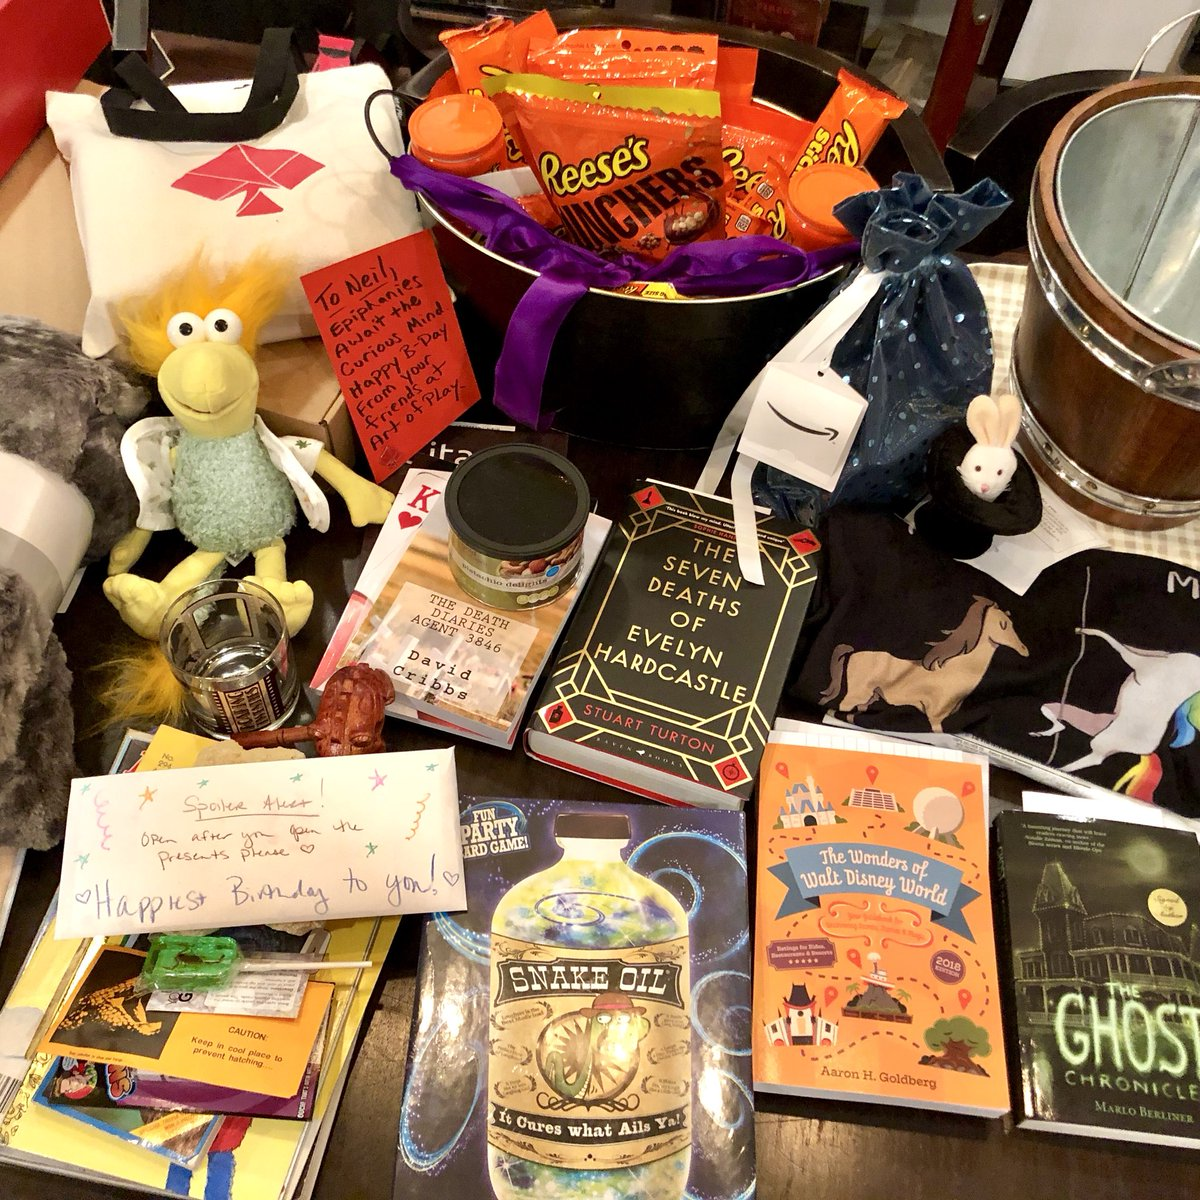 Neil Patrick Harris On Twitter I Received An Awesome Bunch Of Birthday Gifts From People